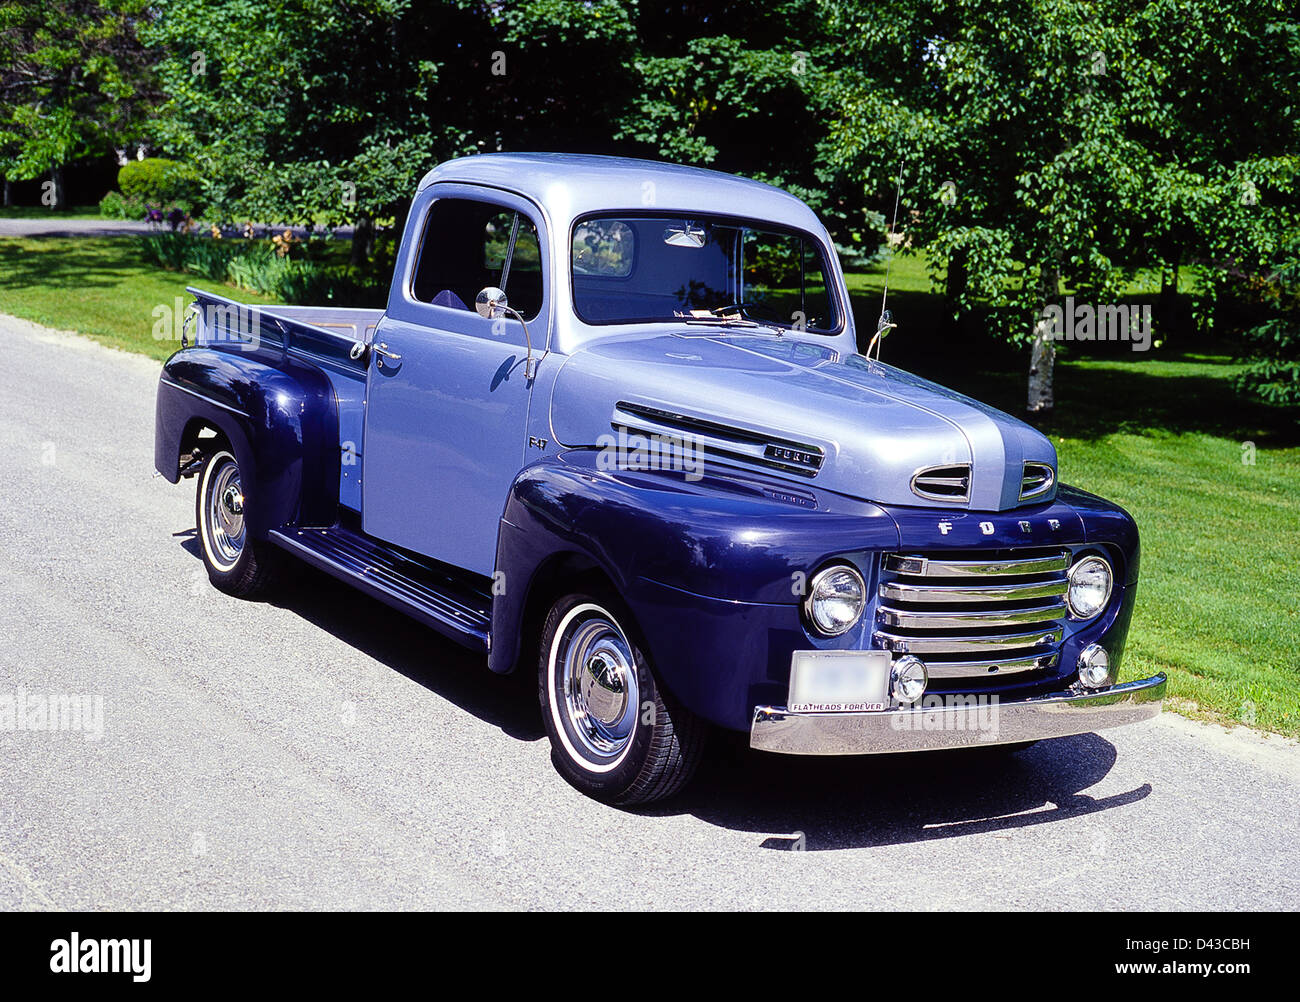 1950 ford pickup truck stock photos 1950 ford pickup. Black Bedroom Furniture Sets. Home Design Ideas